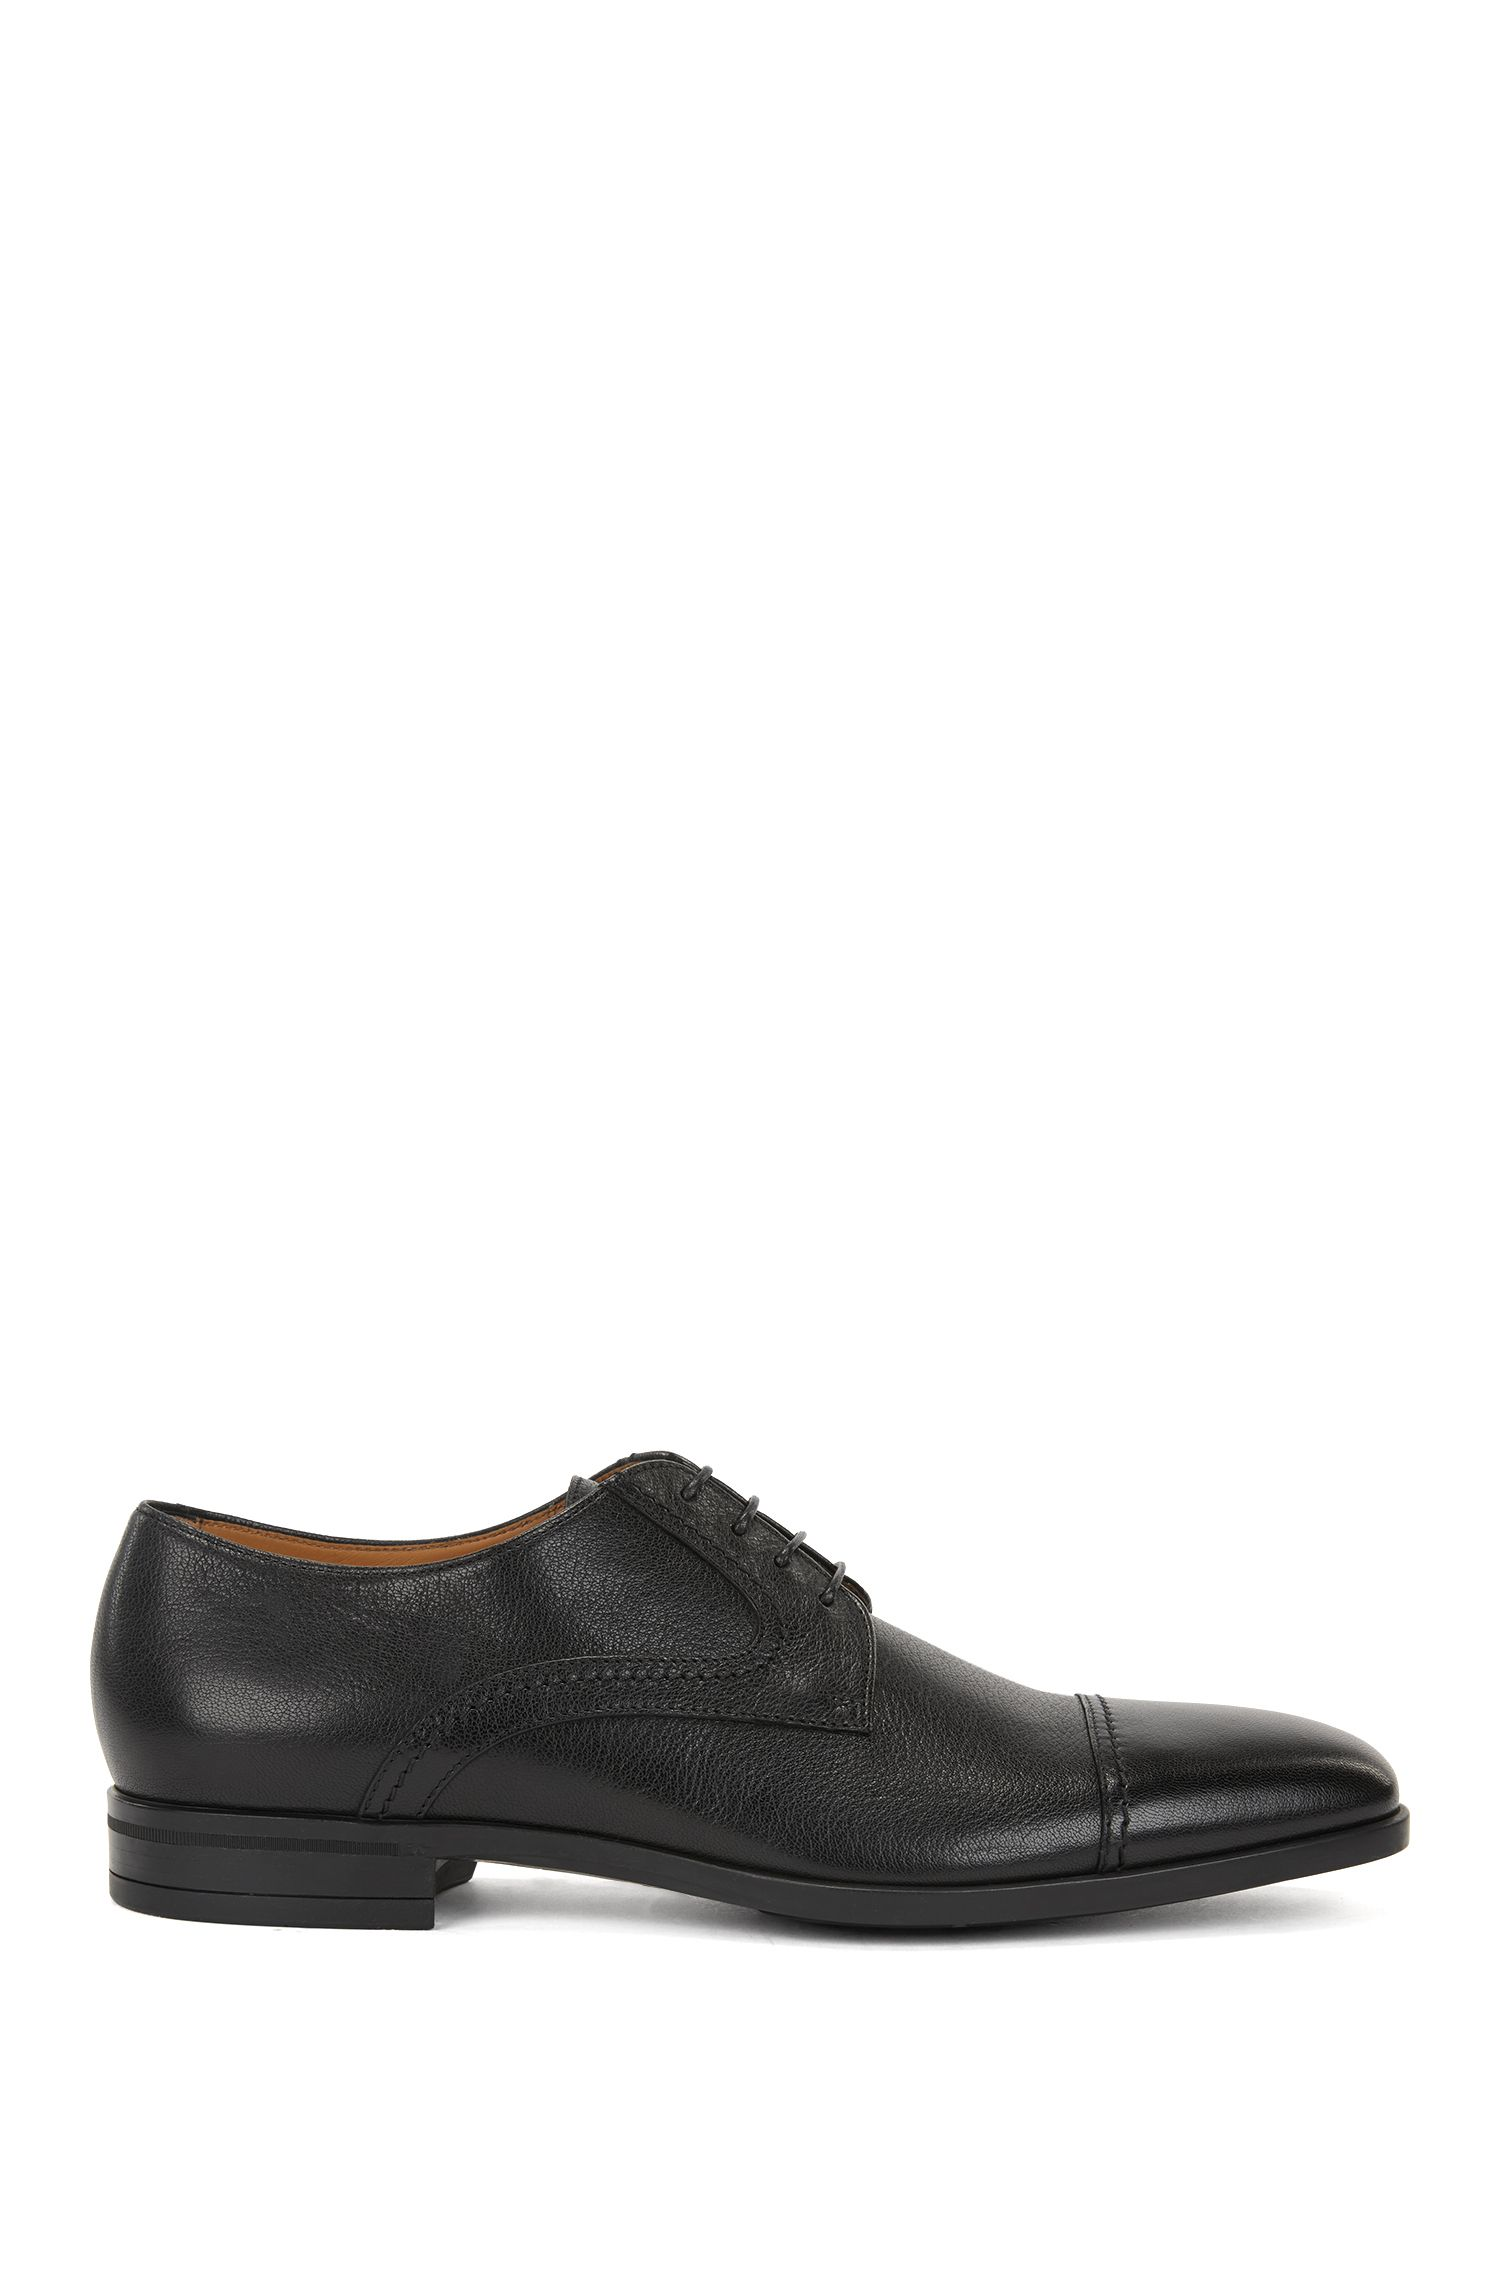 Tumbled leather Derby shoes with double stitching detail